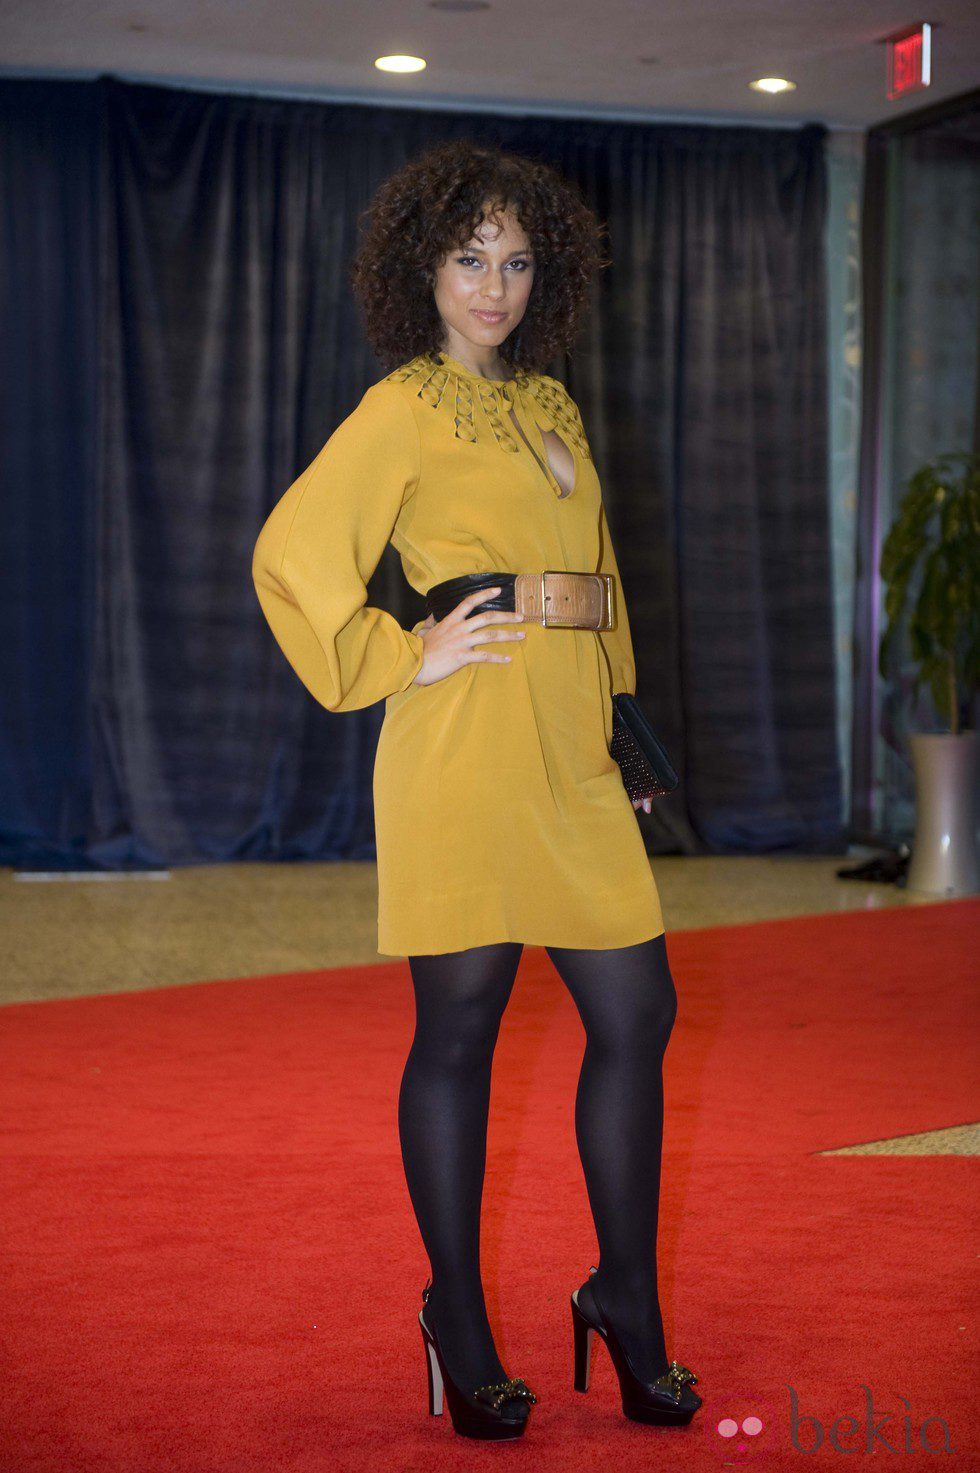 Alicia Keys en la cena de corresponsales en Washington